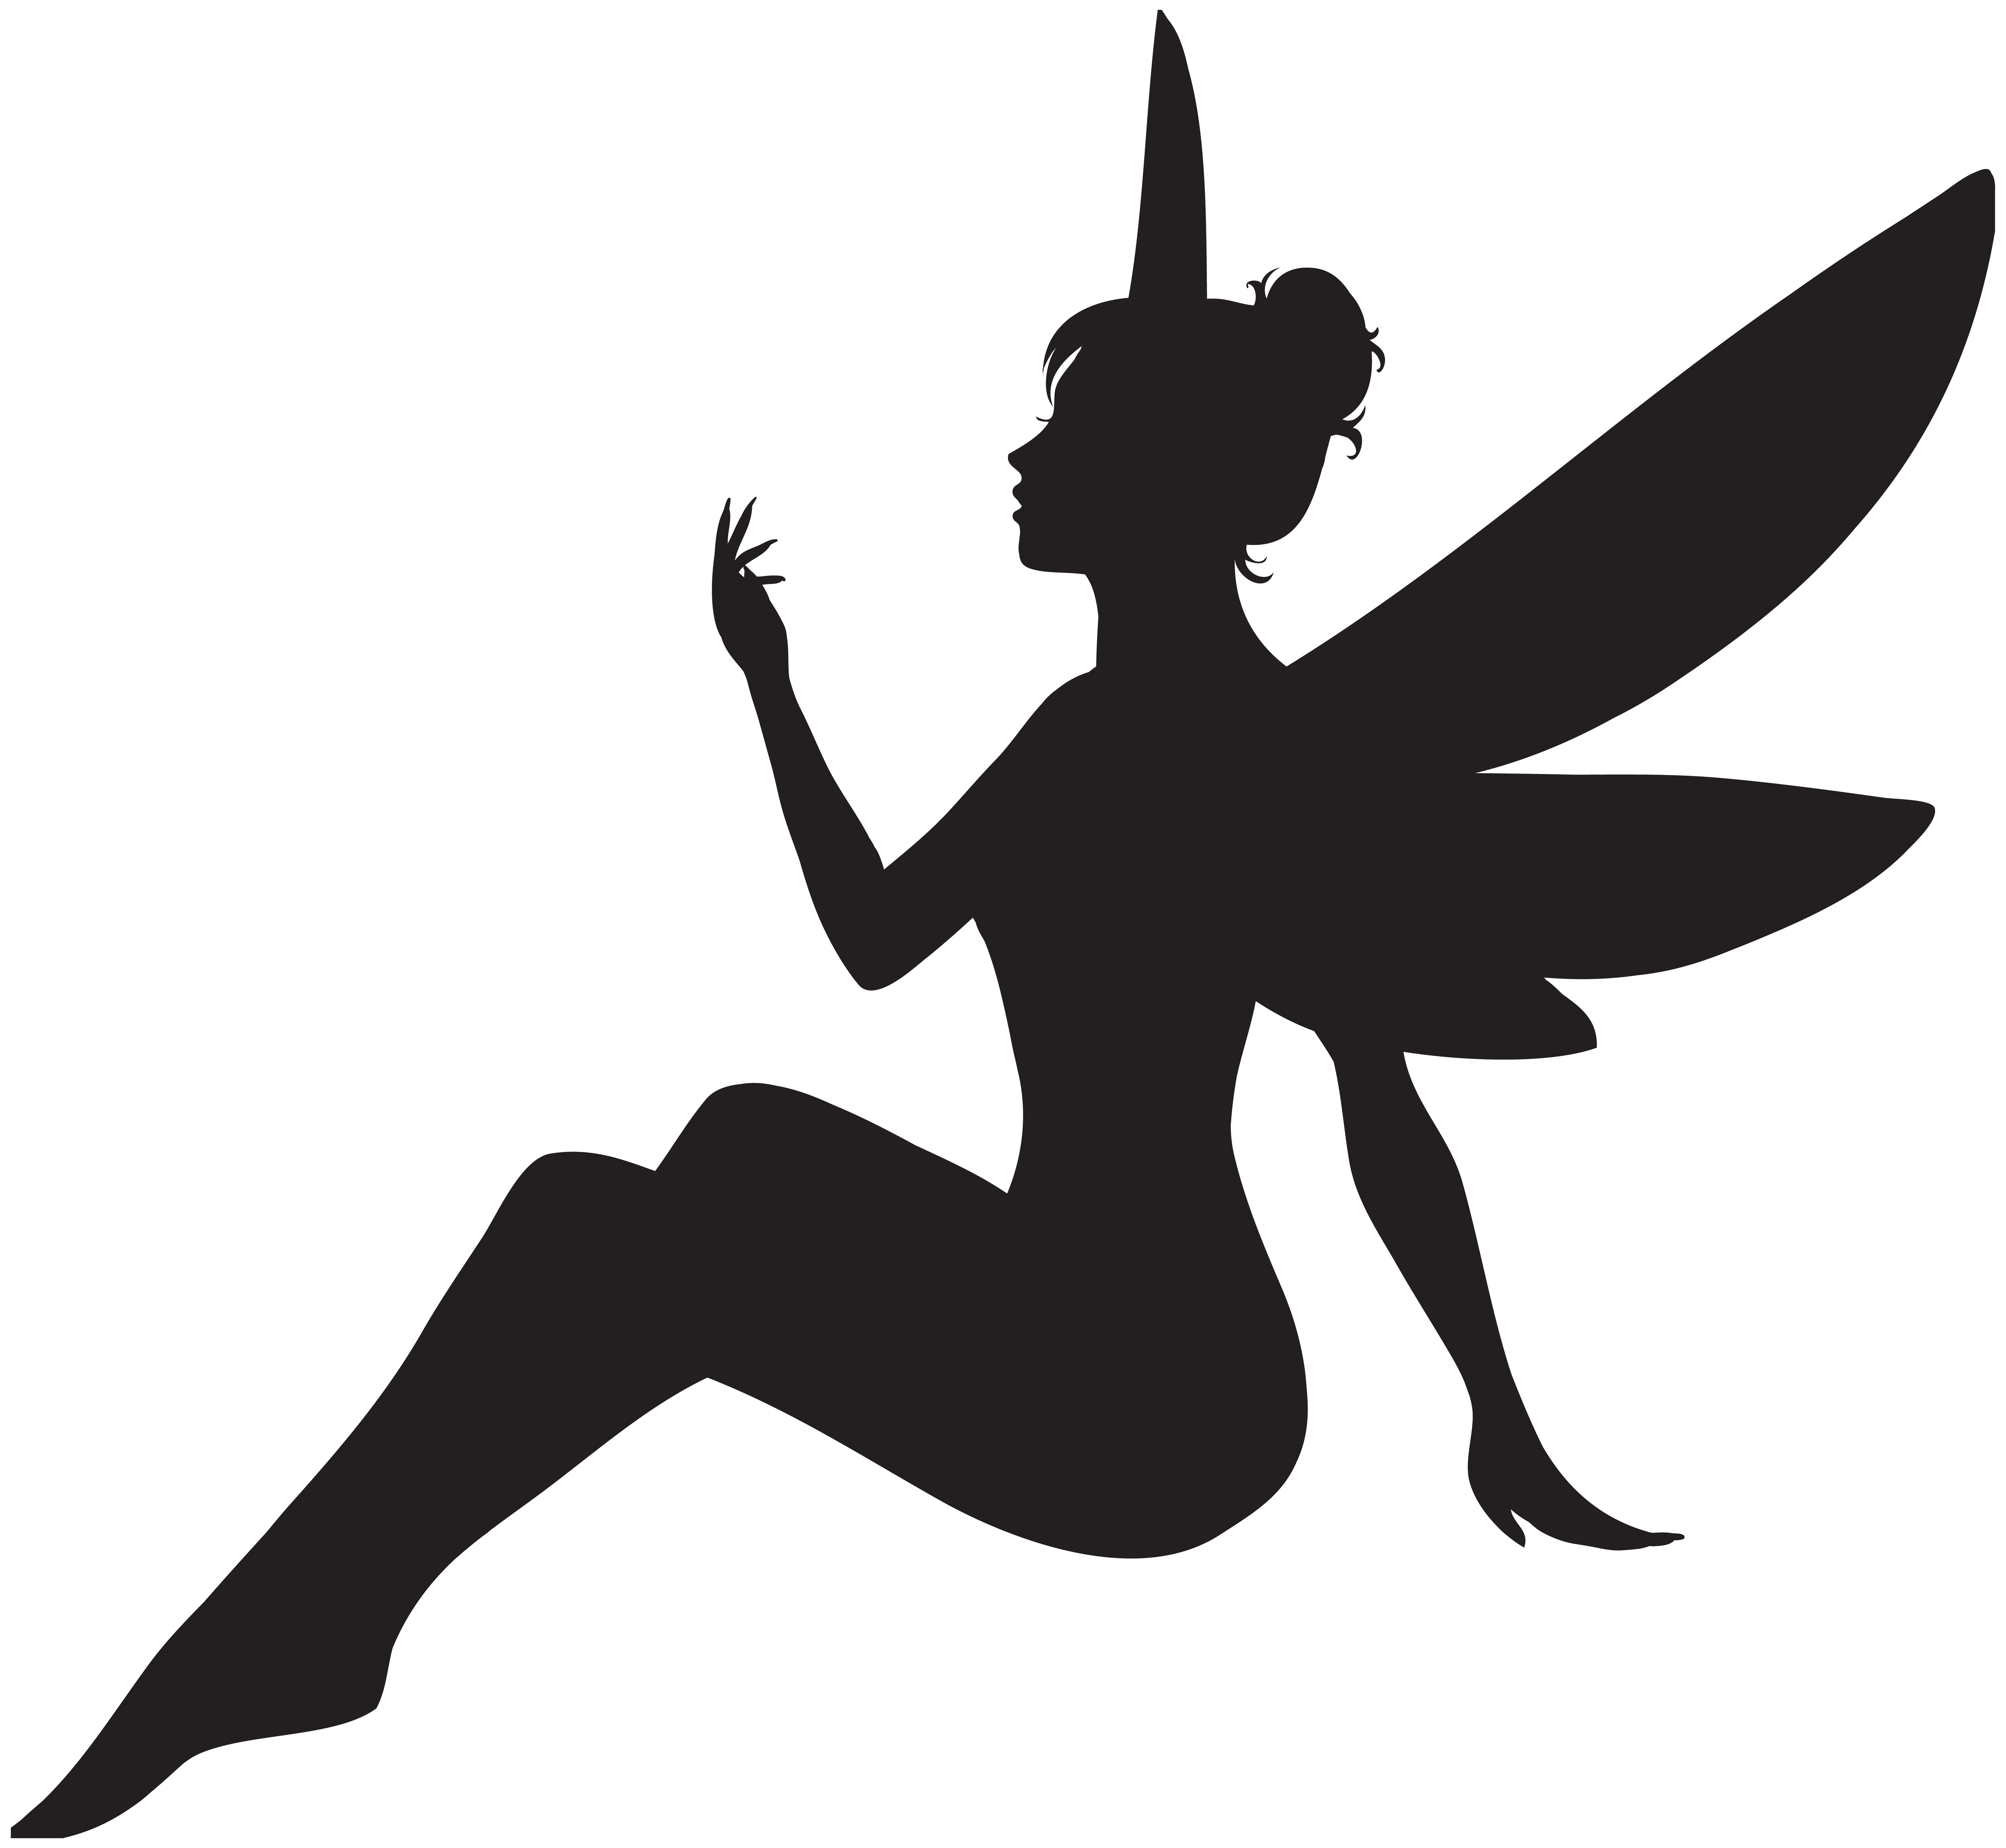 vector library download Silhouette Fairy at GetDrawings